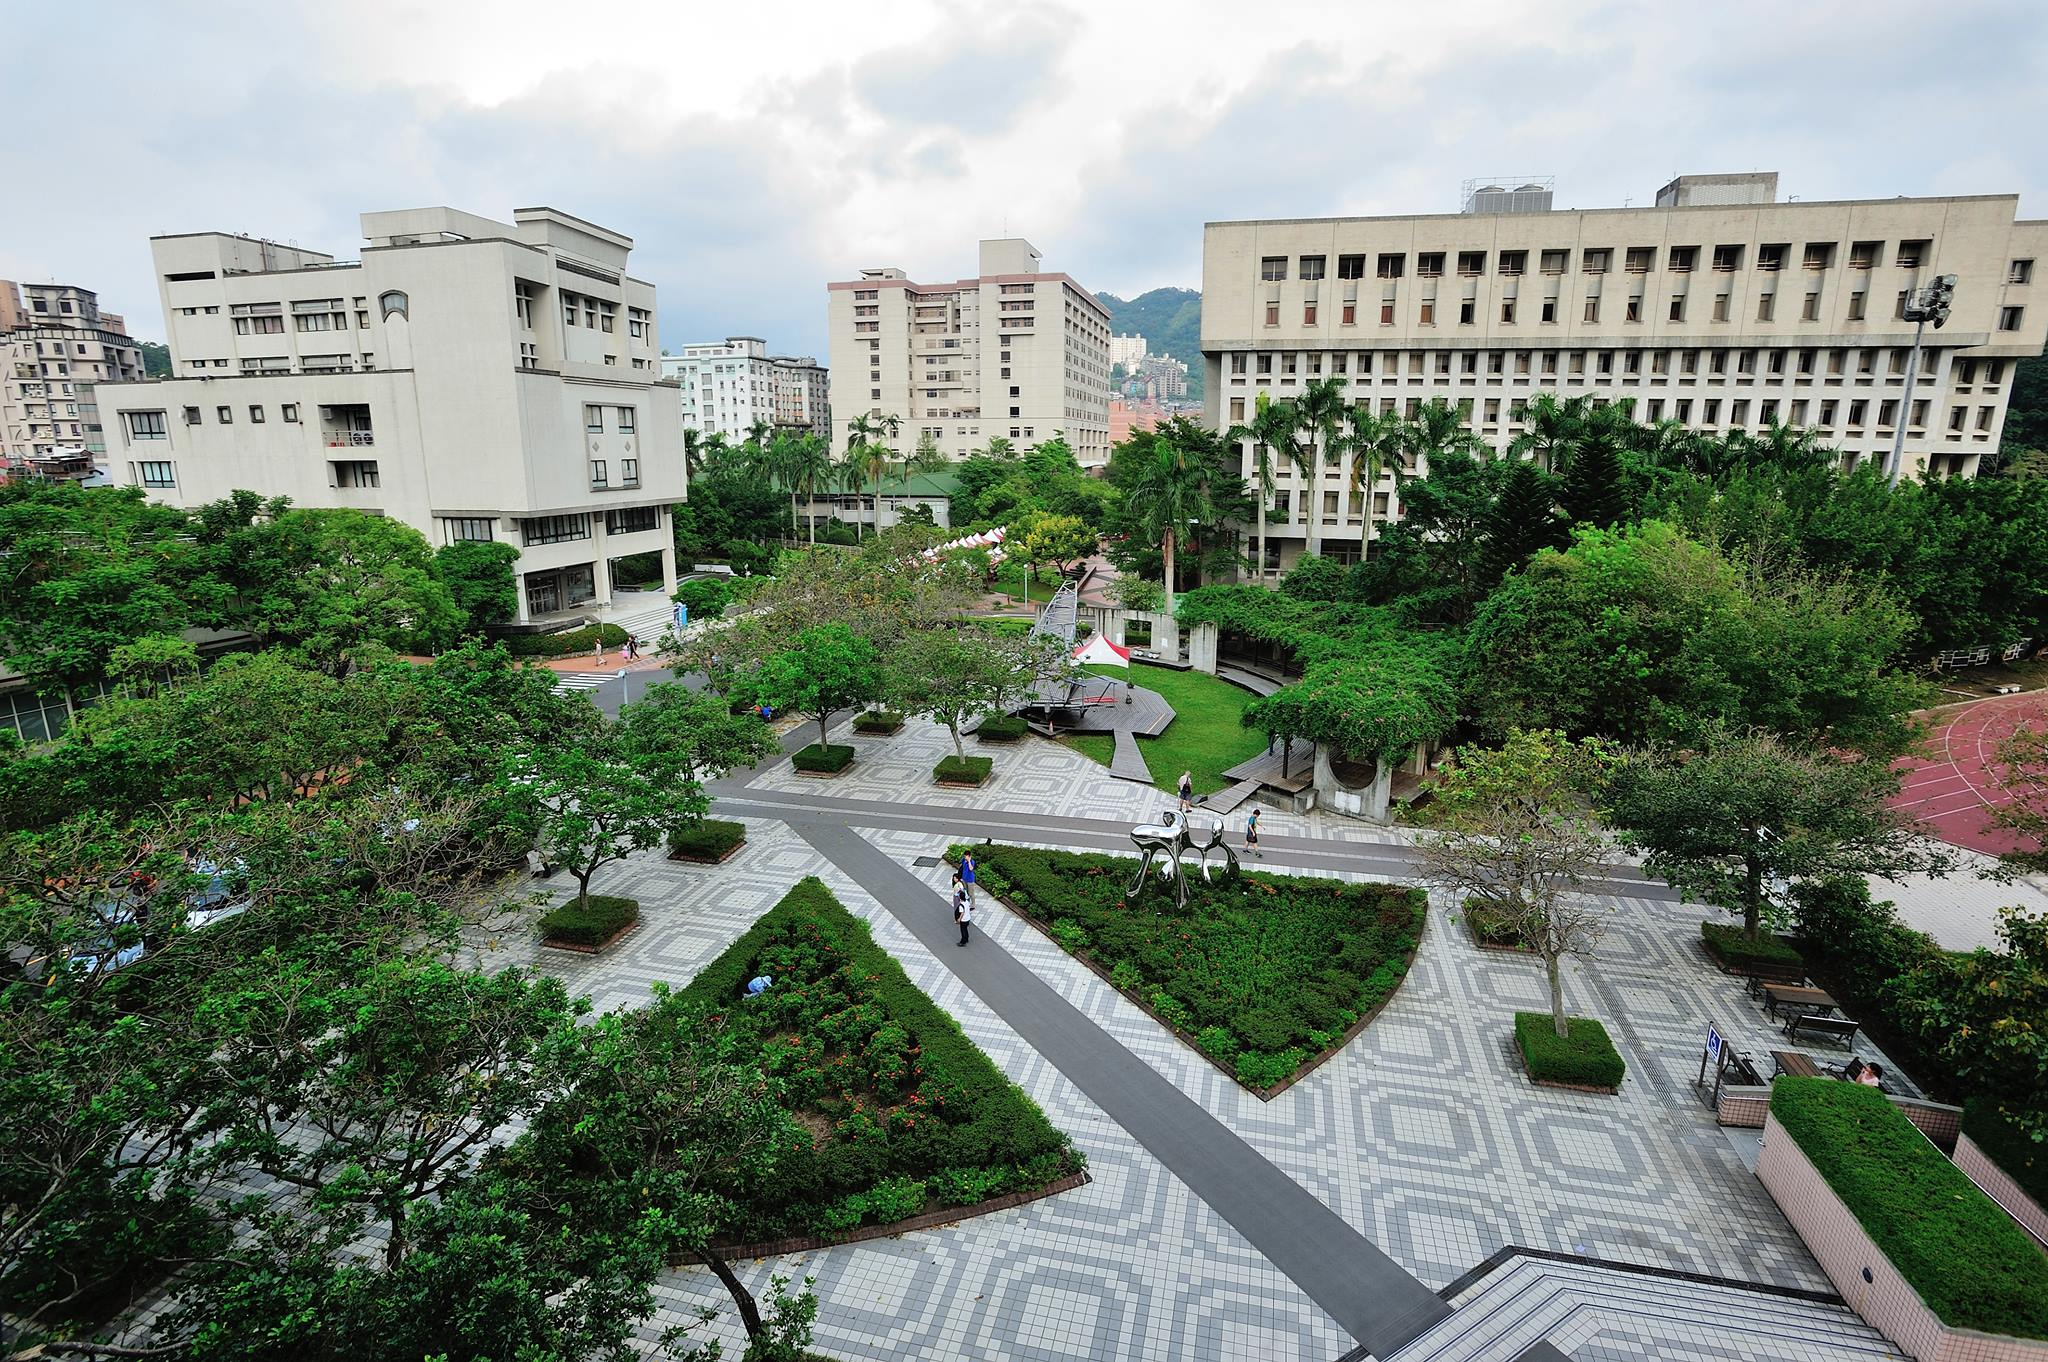 Applications open for Global Governance Summer School in Taiwan